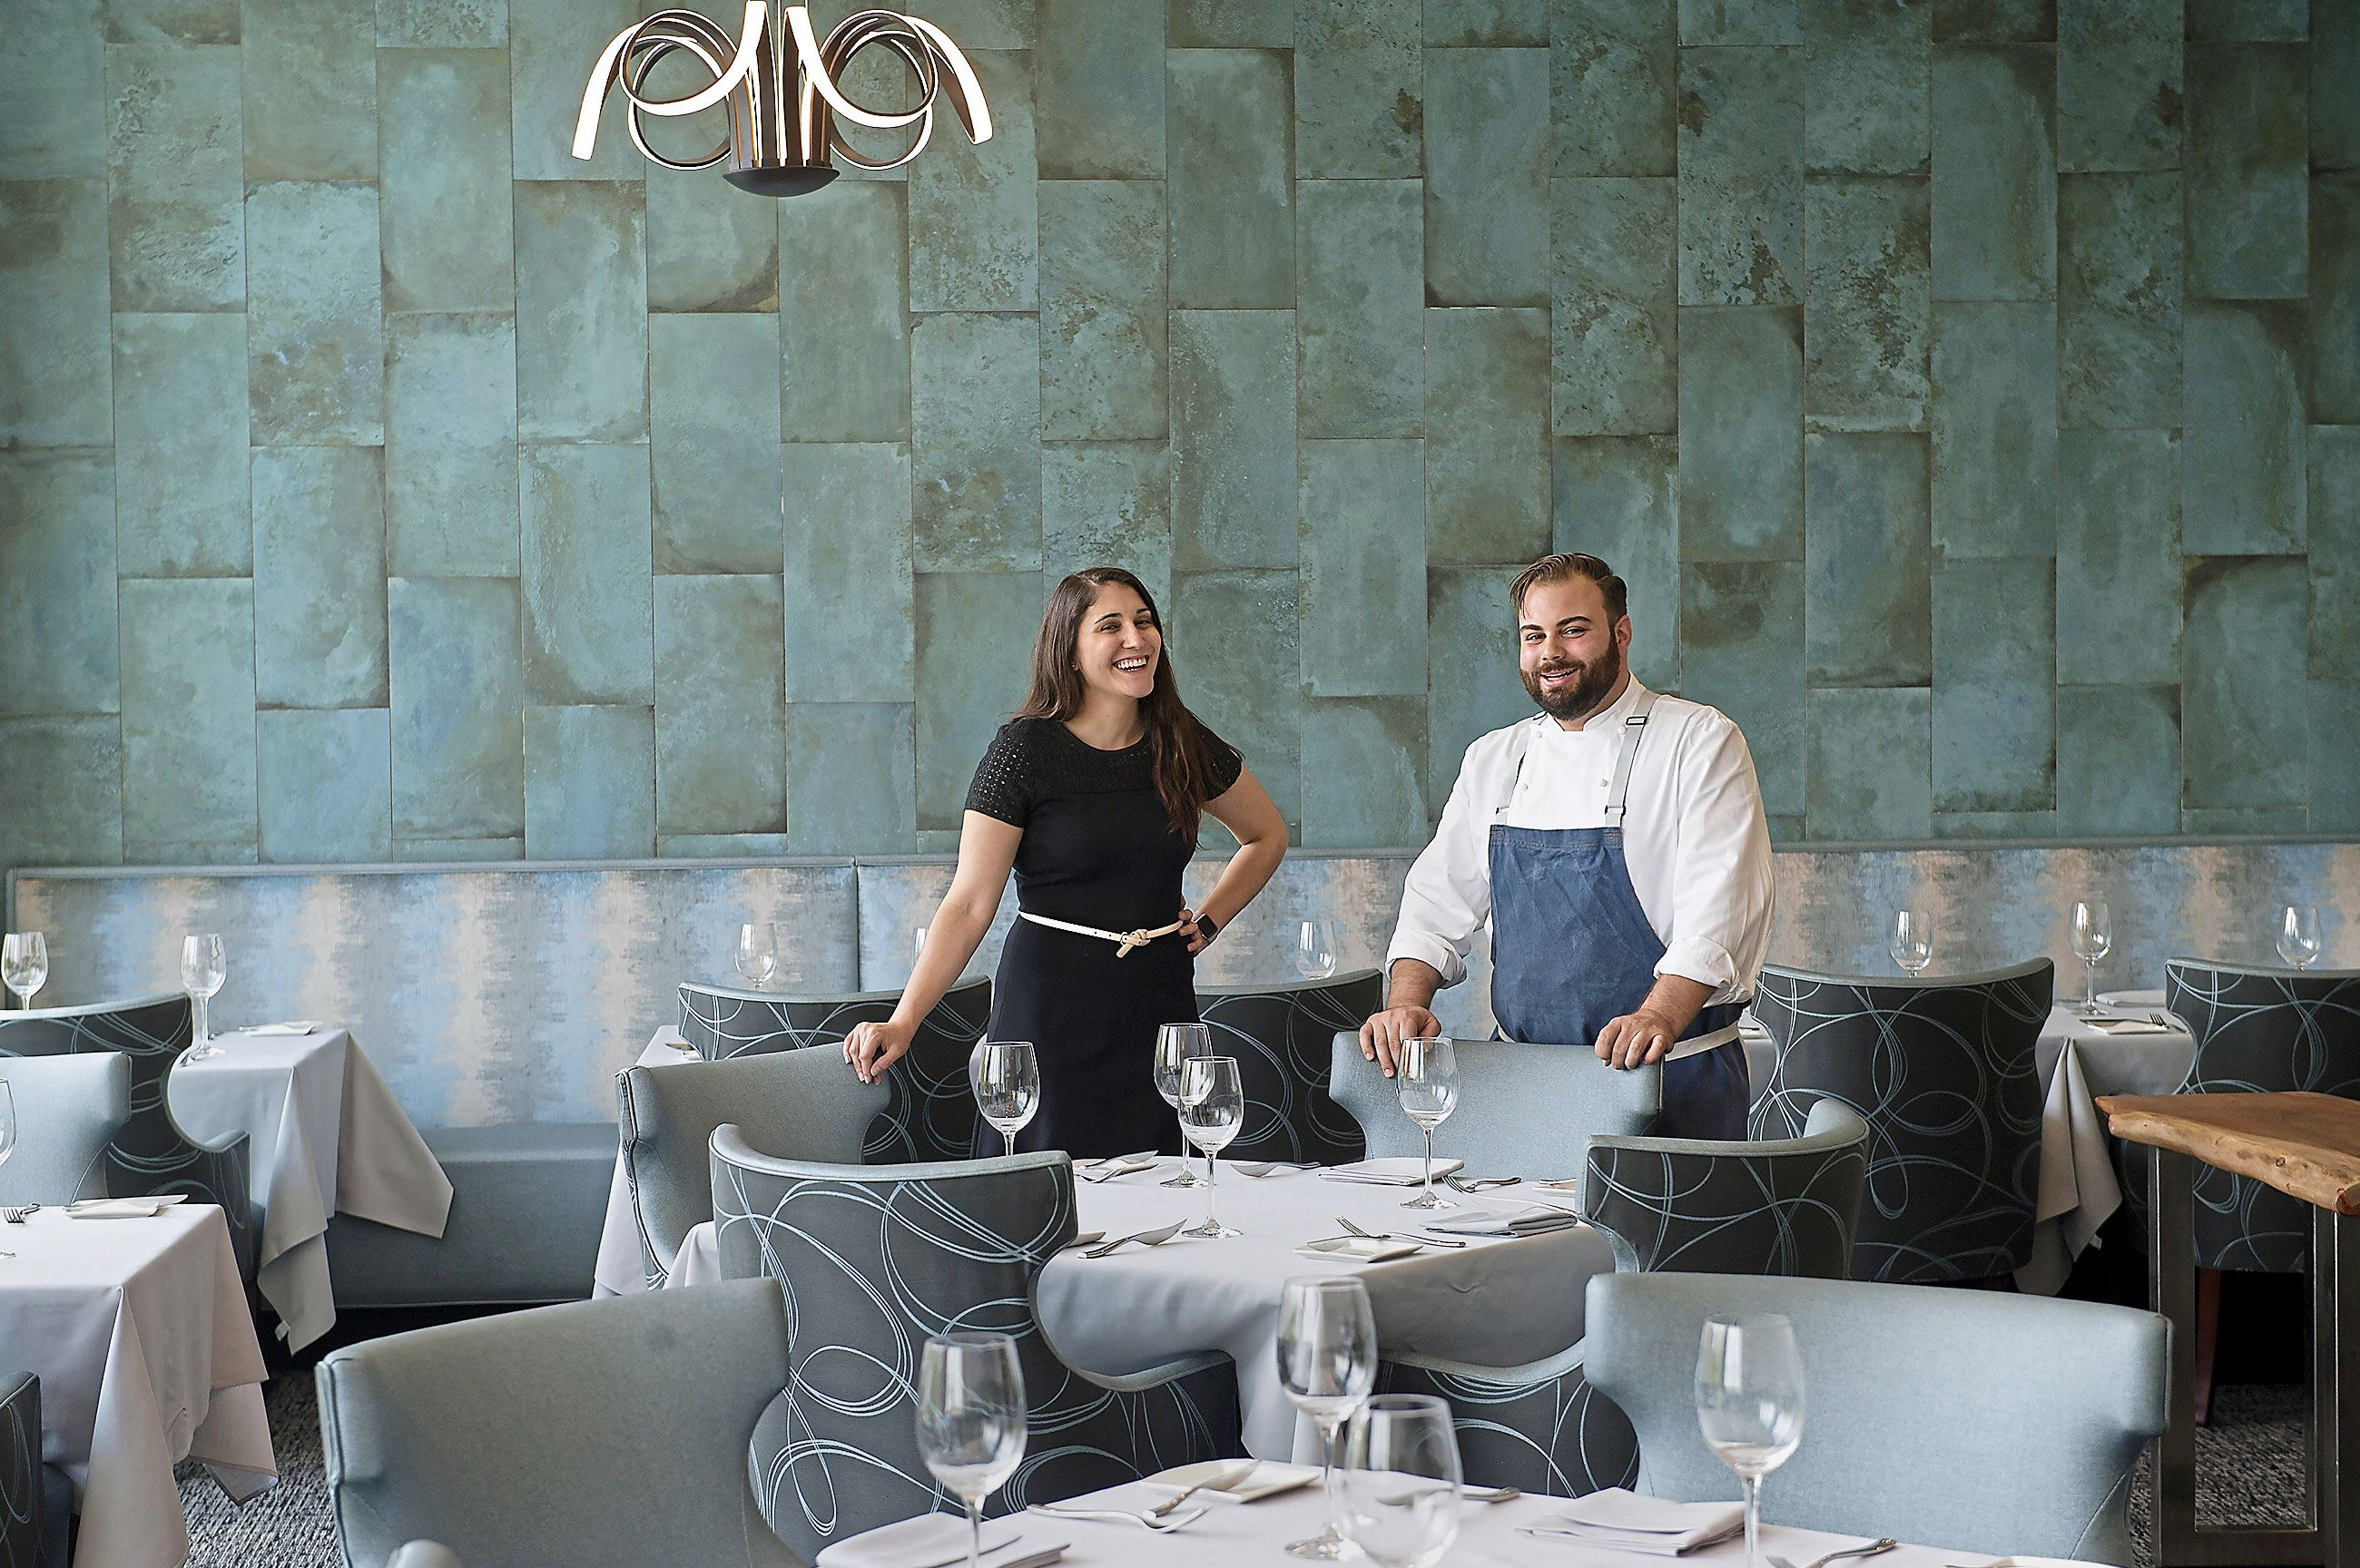 20170811rldTwistedFrenchman03-2 Vanessa Cominsky, assistant general manager and sommelier, and Andrew Garbarino, chef and owner, in the upstairs dining room of the Twisted Frenchman in East Liberty.